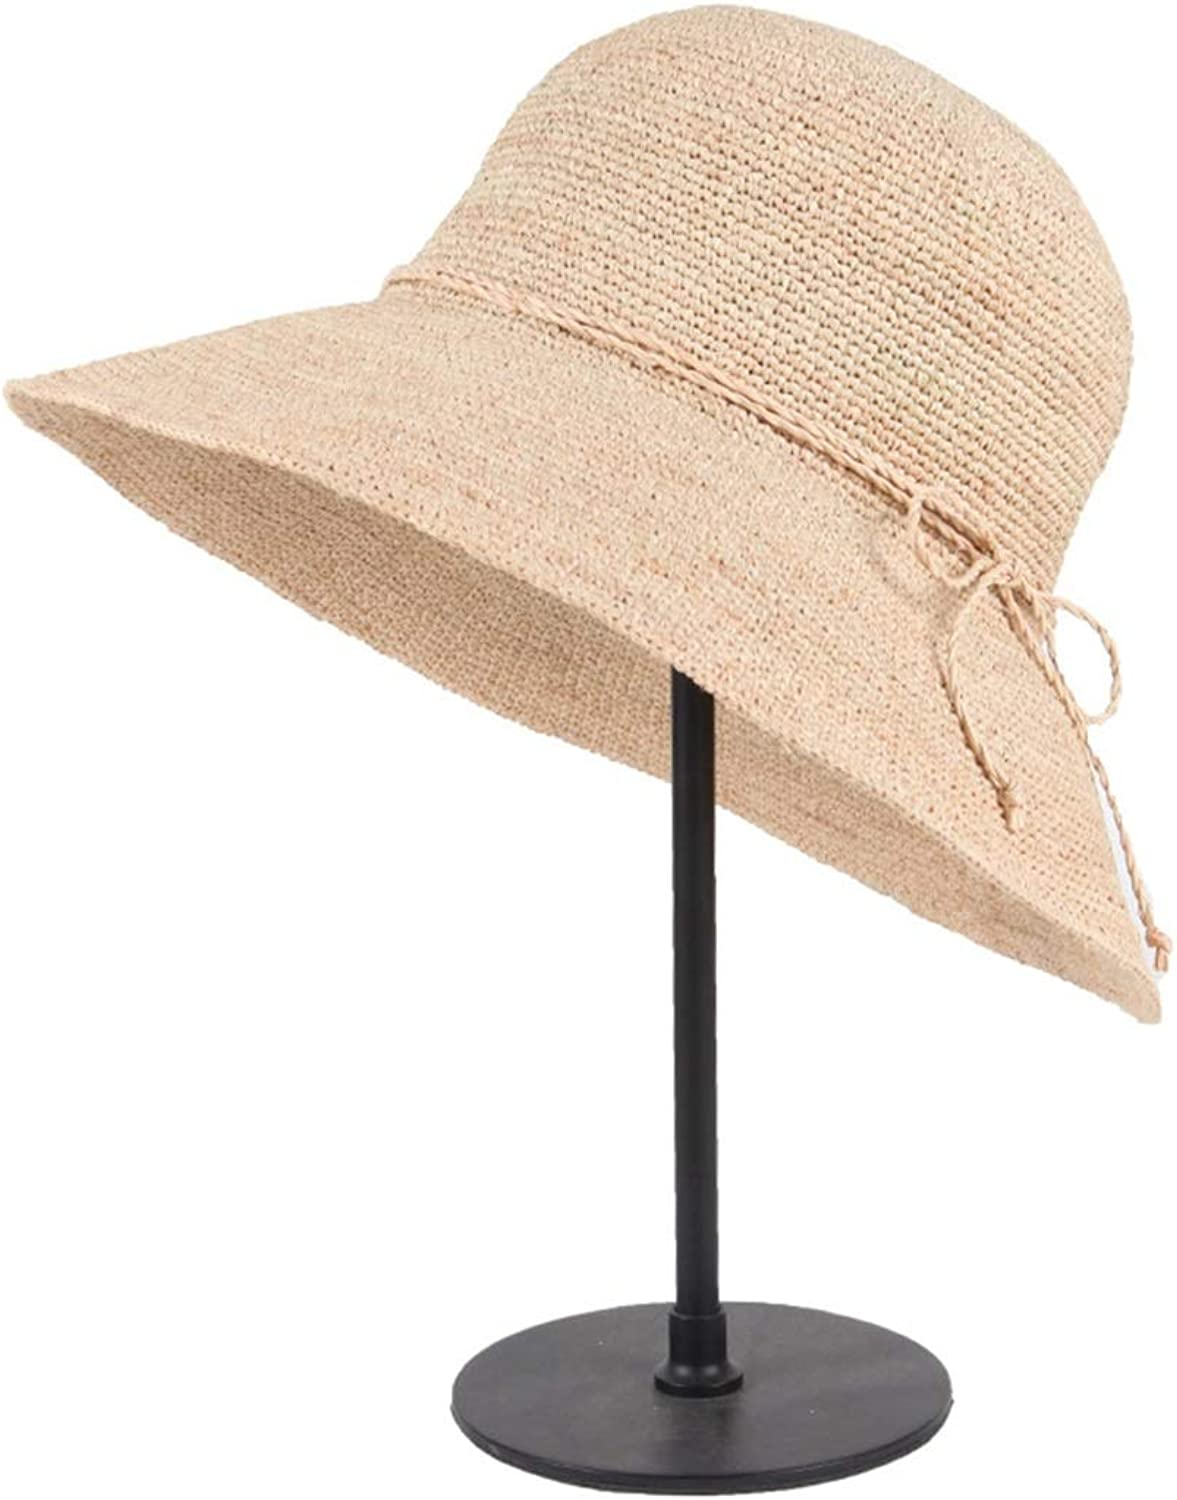 Carriemeow Spring and Summer Sun Predection, Sun Hat Big Along The Hat, Folding, color Beige Sunhat (color   Beige)